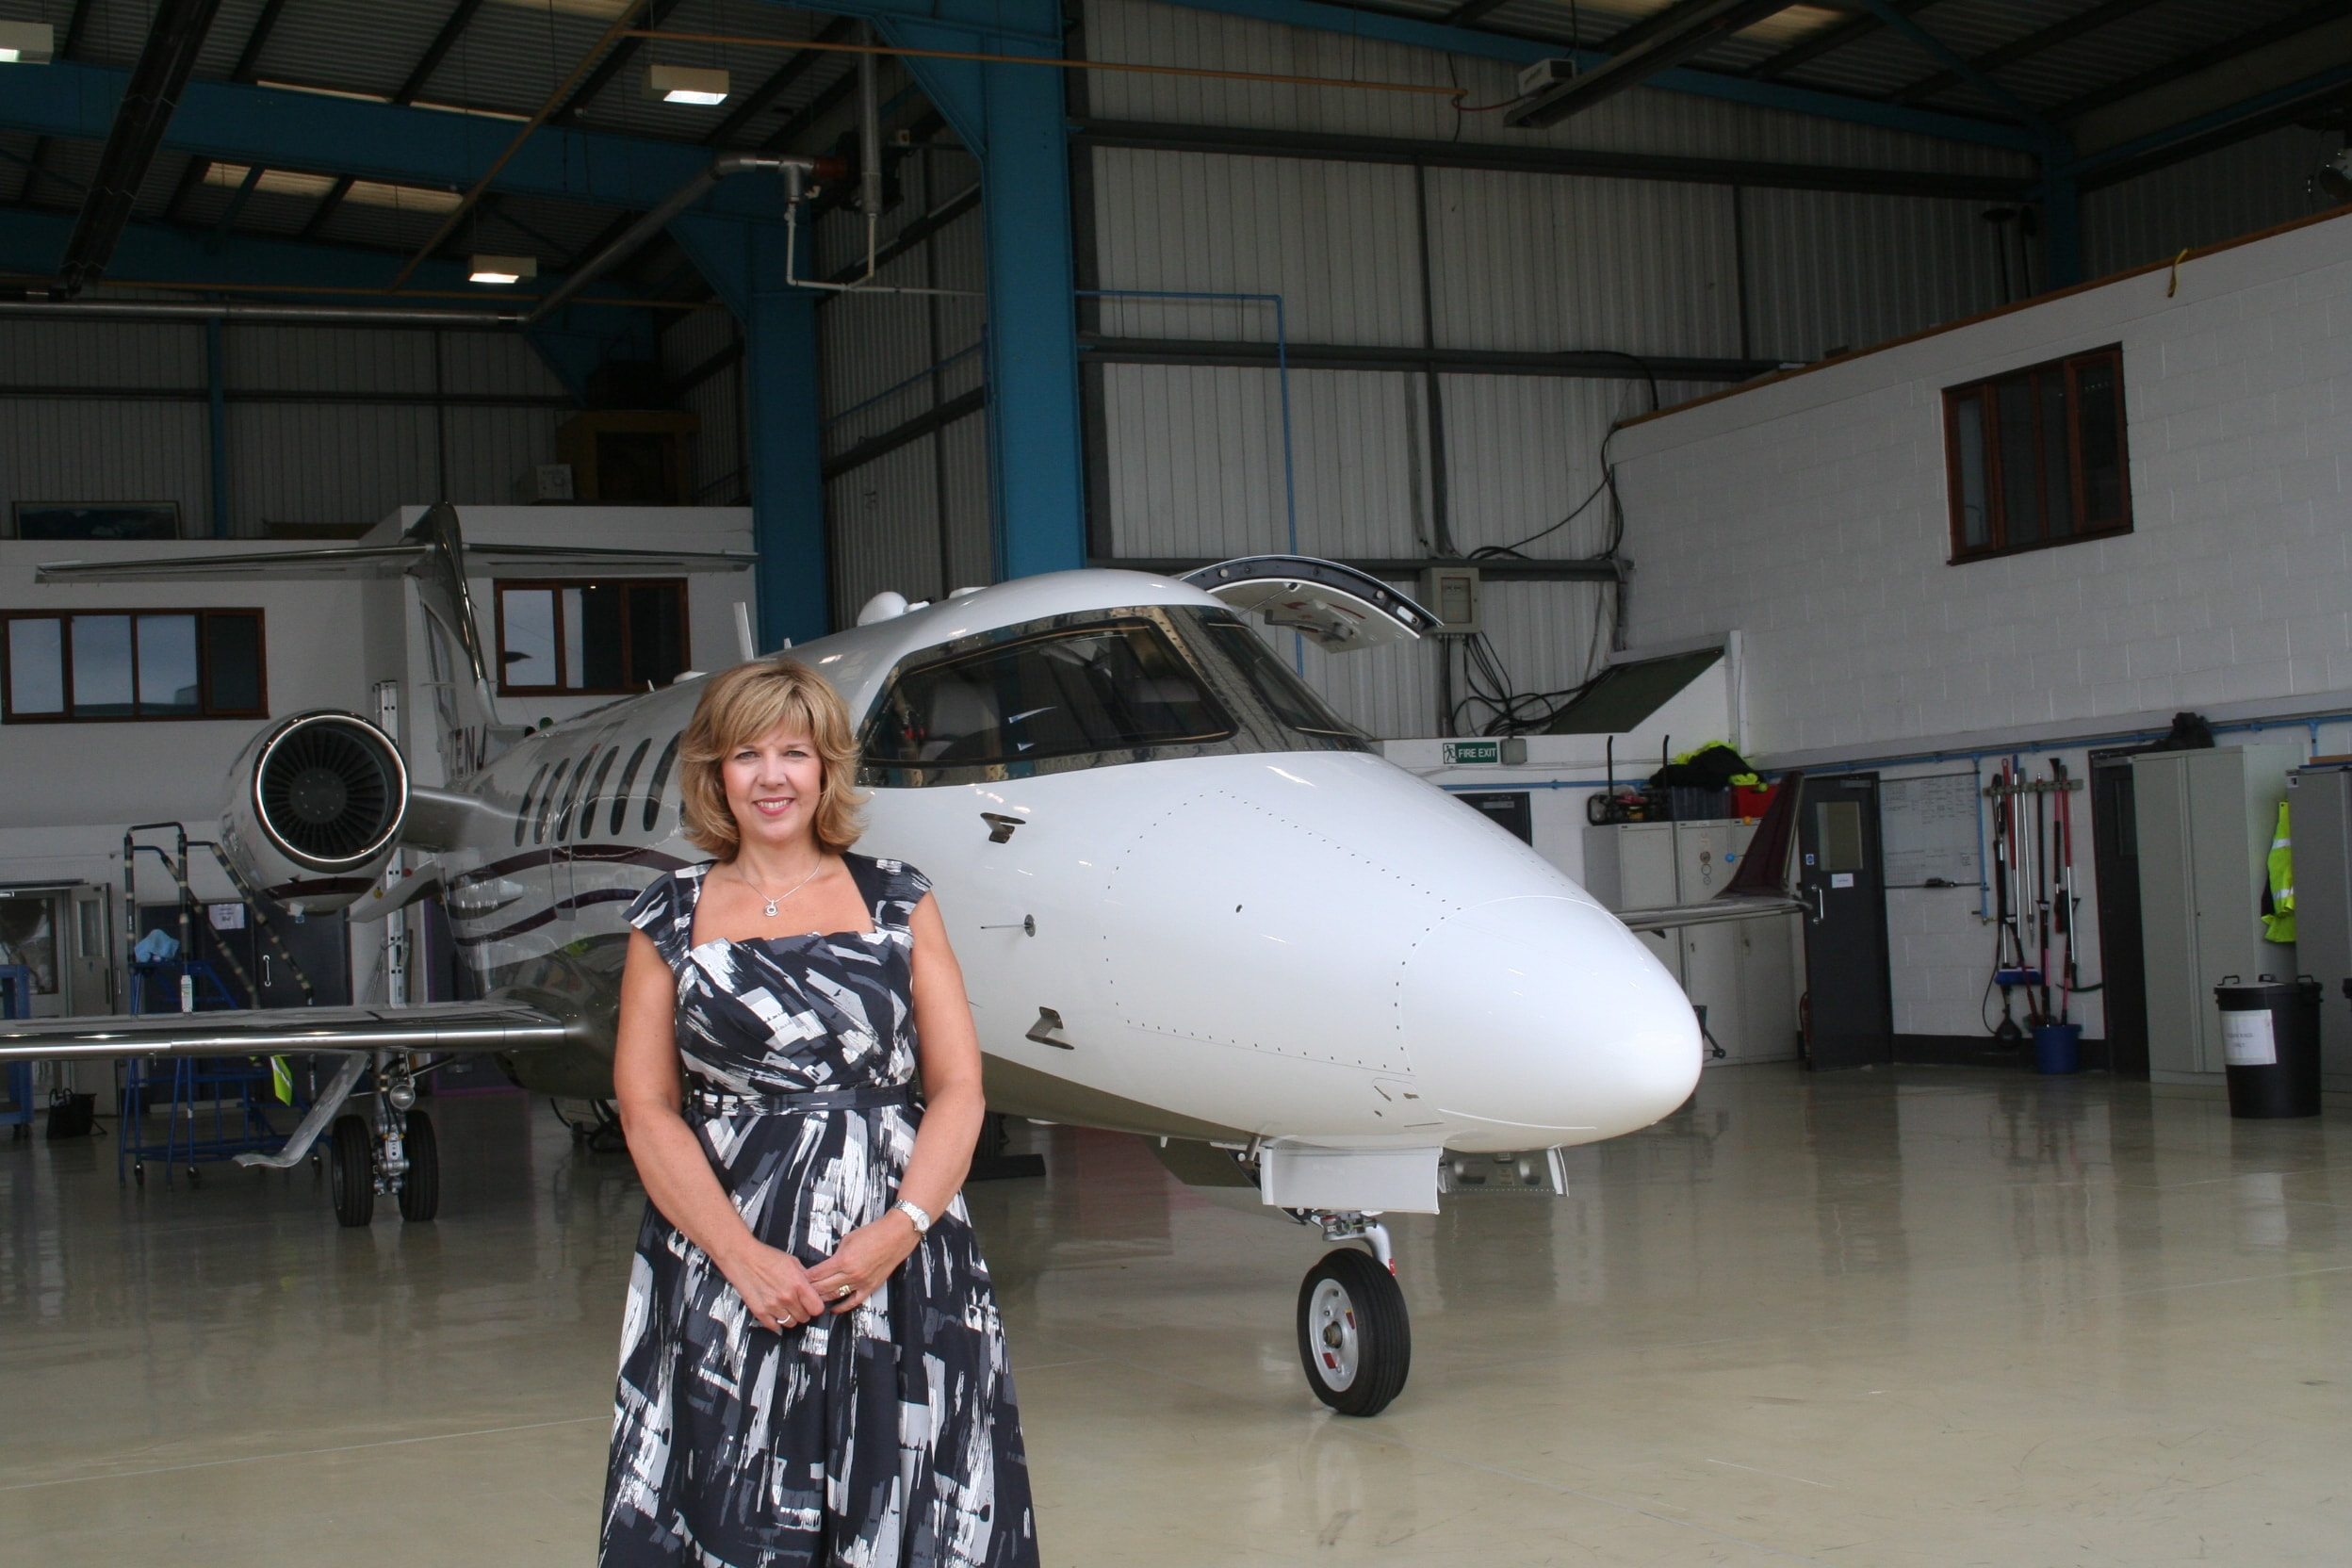 Alison with aircraft